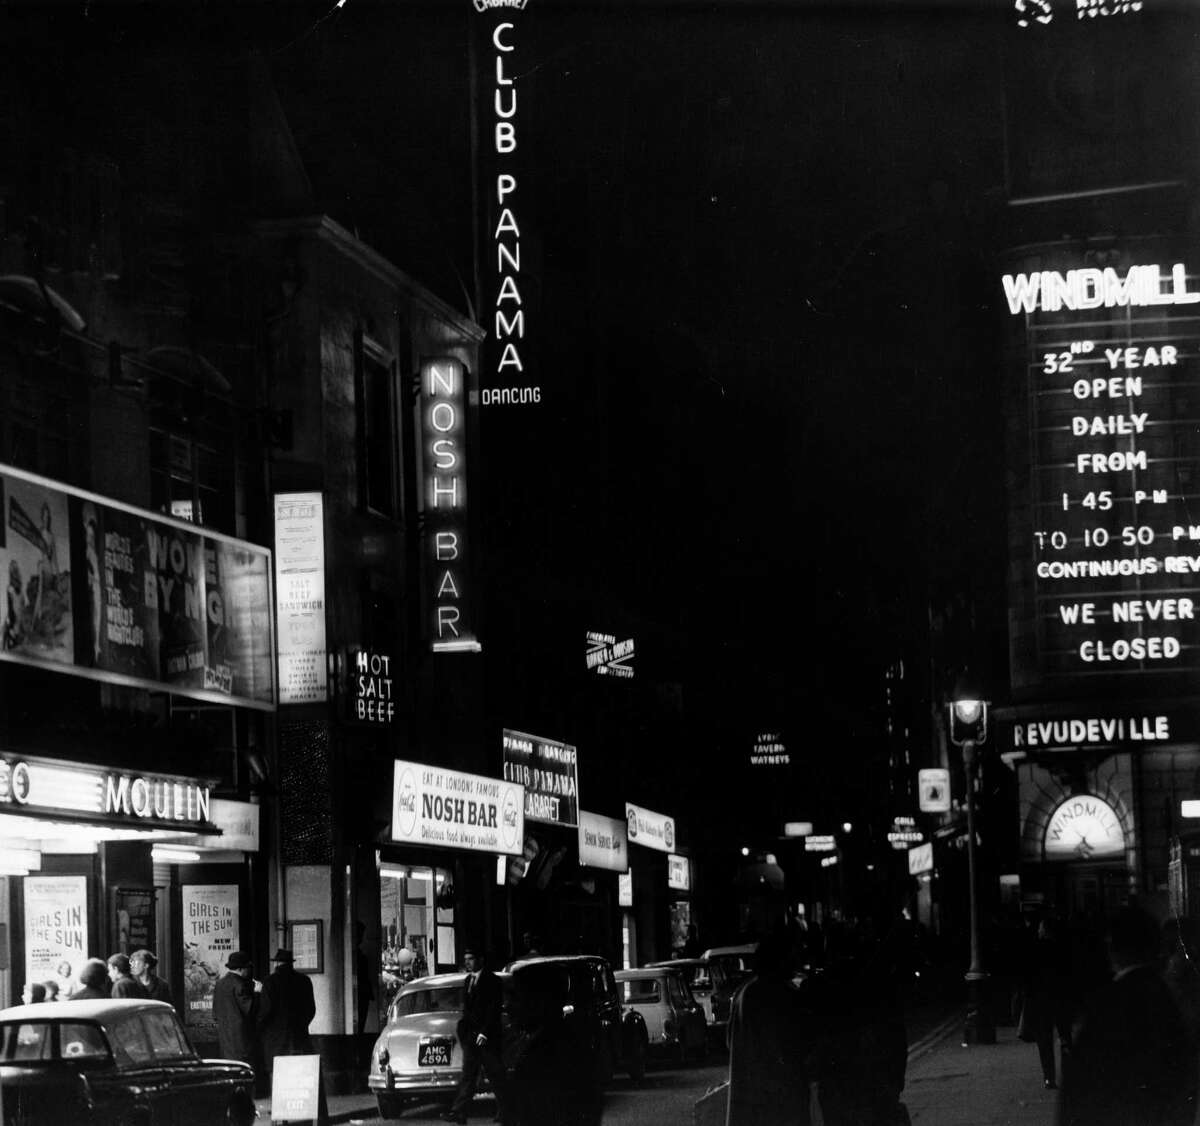 4th November 1963: Great Windmill street in Soho, London with restaurants, cinemas and clubs and also the Windmill Theatre, famous for never closing during WW II.